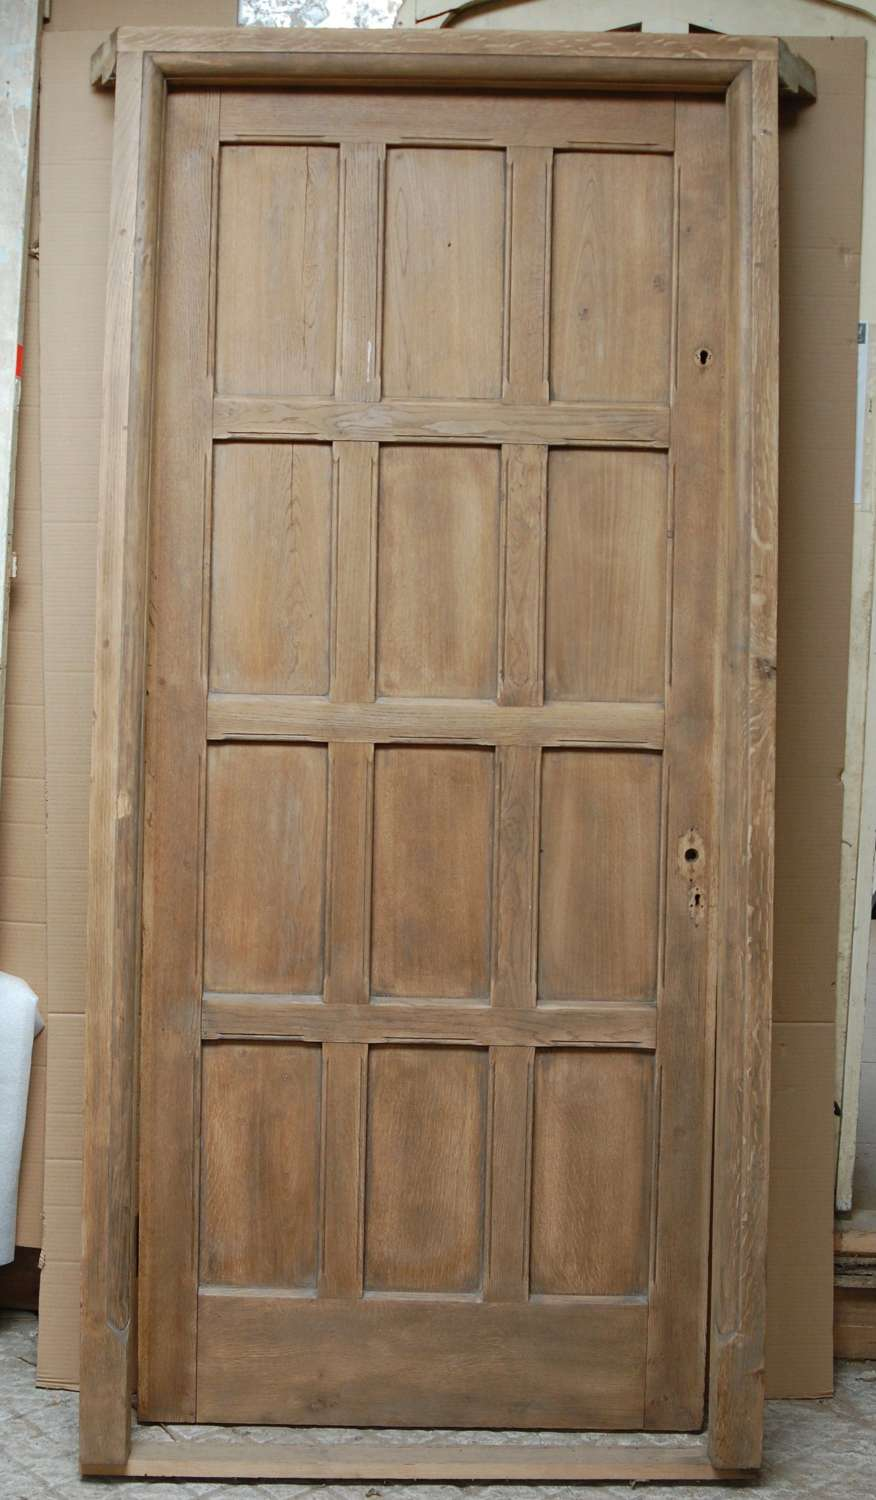 DE0853 LARGE RECLAIMED ARTS AND CRAFTS OAK FRONT DOOR AND FRAME